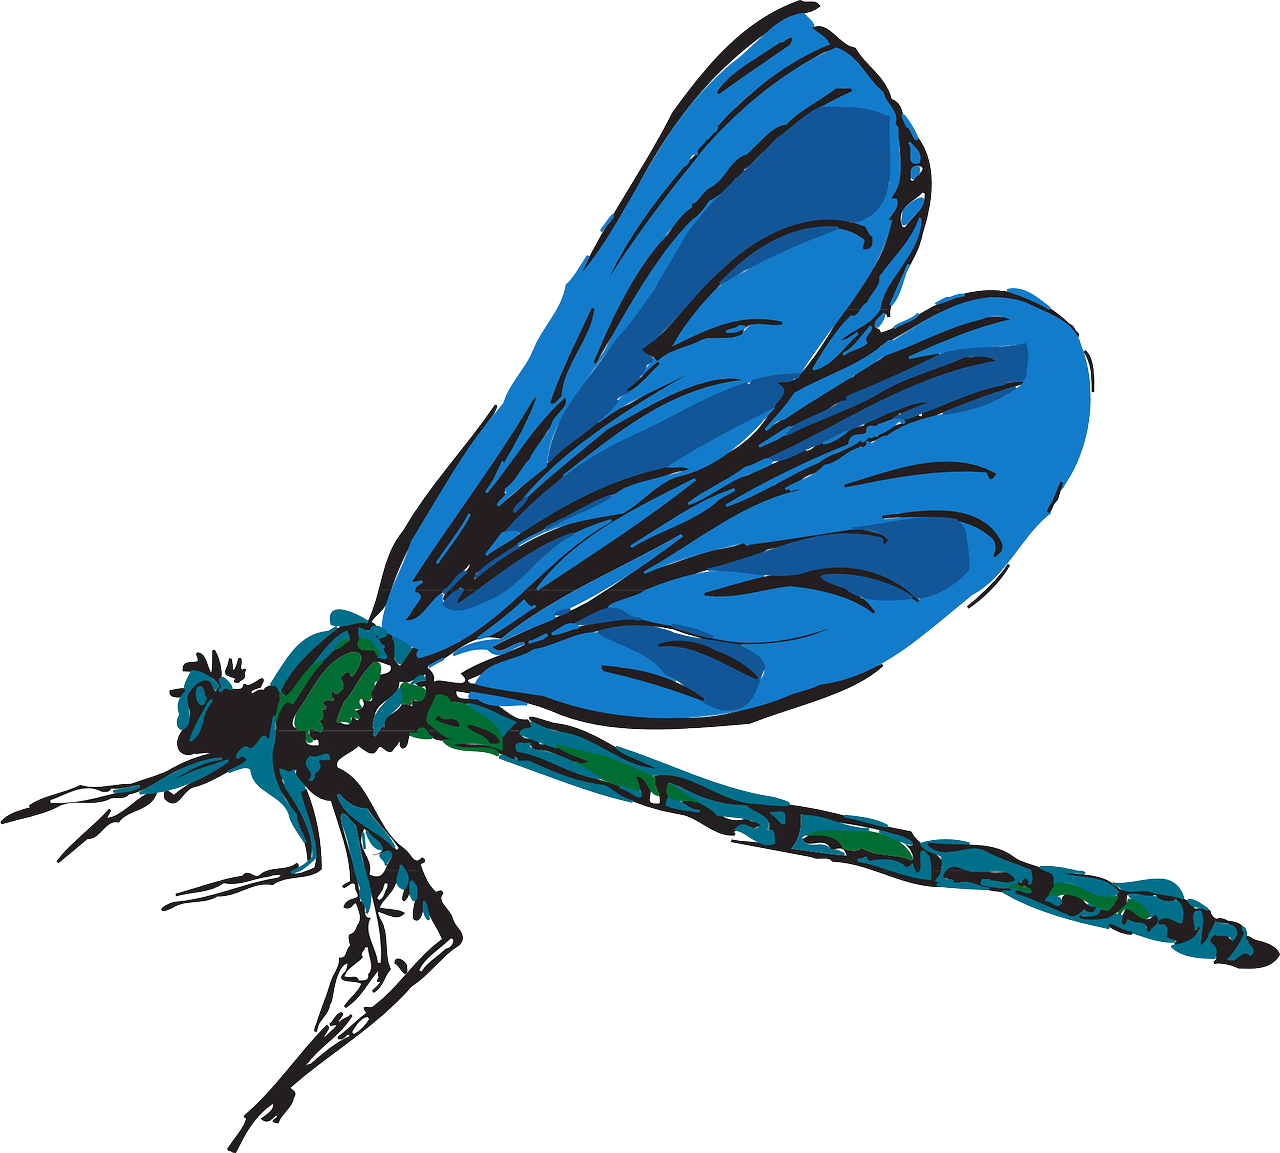 Dragonfly transparent big blue. Jpg free library